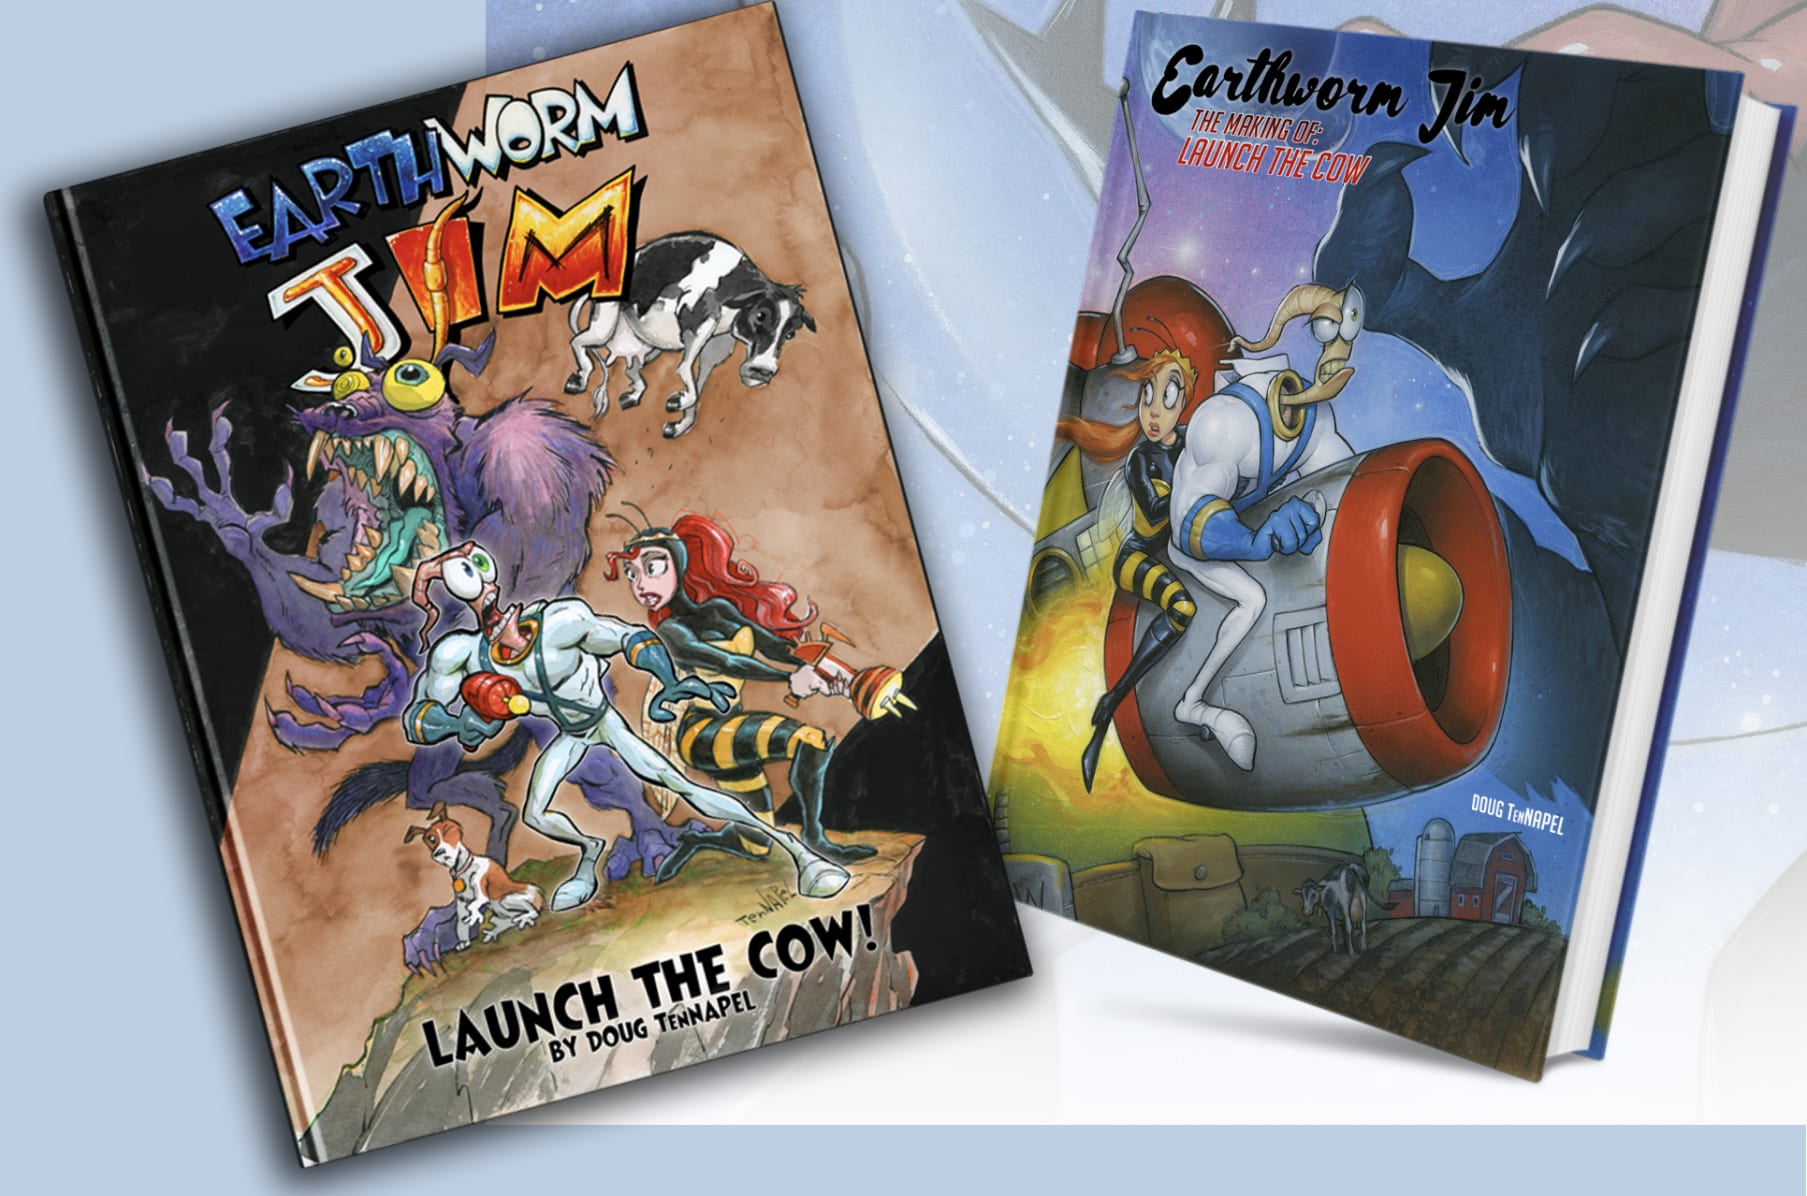 earthworm_jim_comic_book.jpg